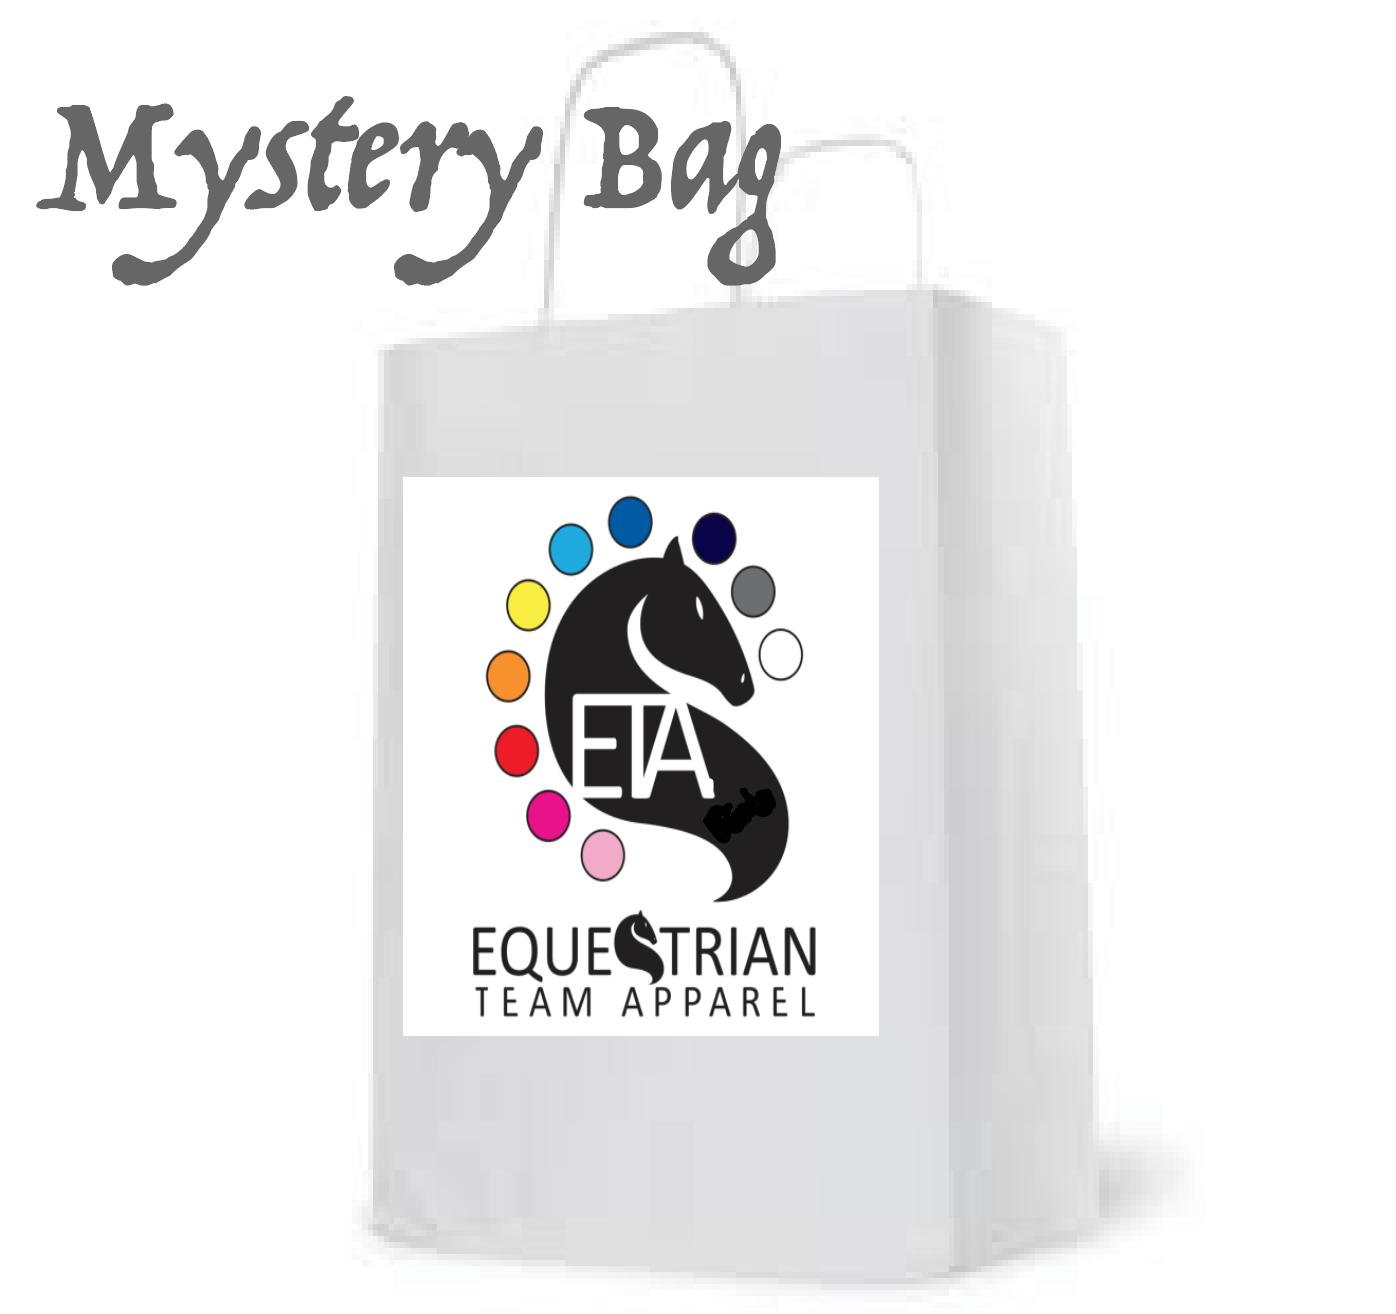 Equestrian Team Apparel Mystery Bag Mystery Bag for Equestrians equestrian team apparel online tack store mobile tack store custom farm apparel custom show stable clothing equestrian lifestyle horse show clothing riding clothes horses equestrian tack store